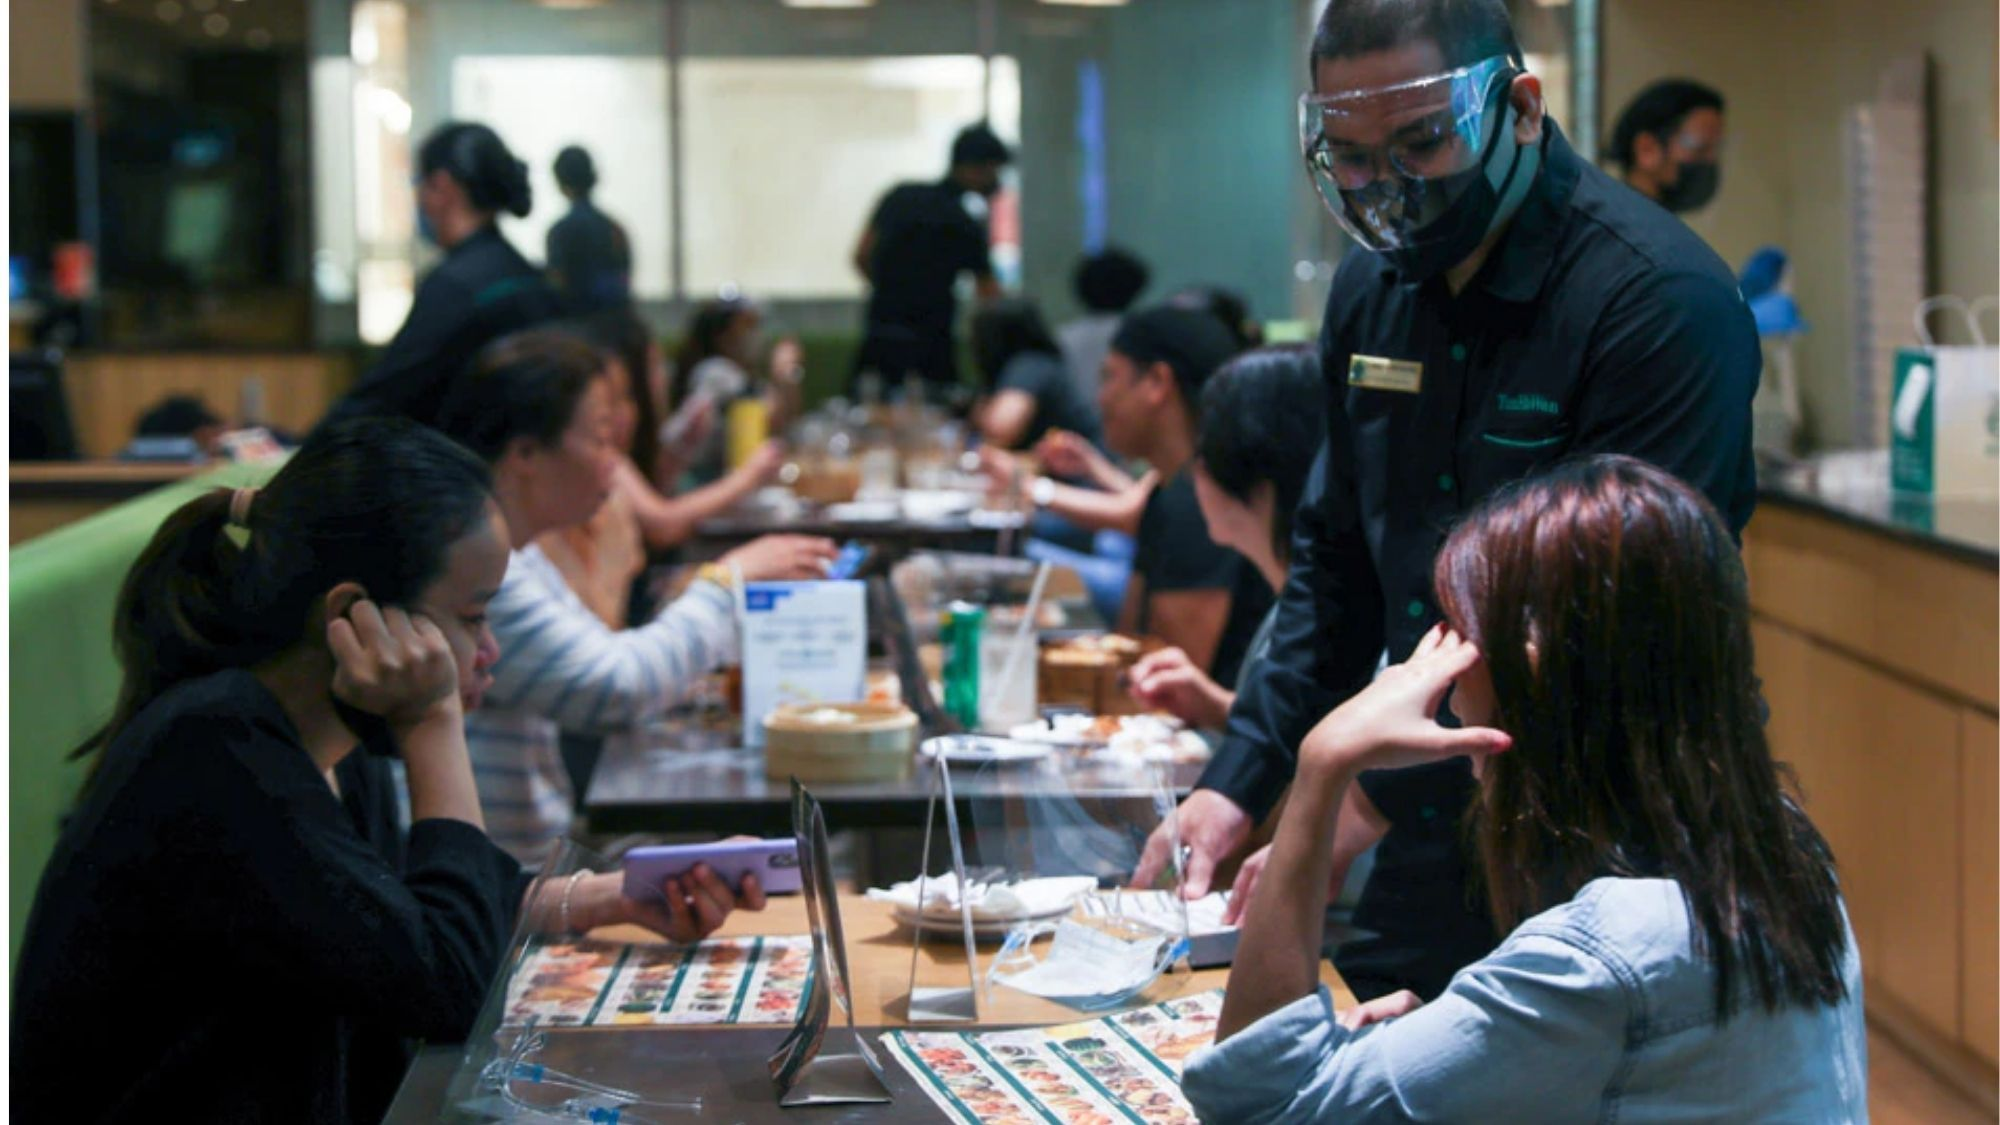 Restos offer treats, discounts for vaccinated clients